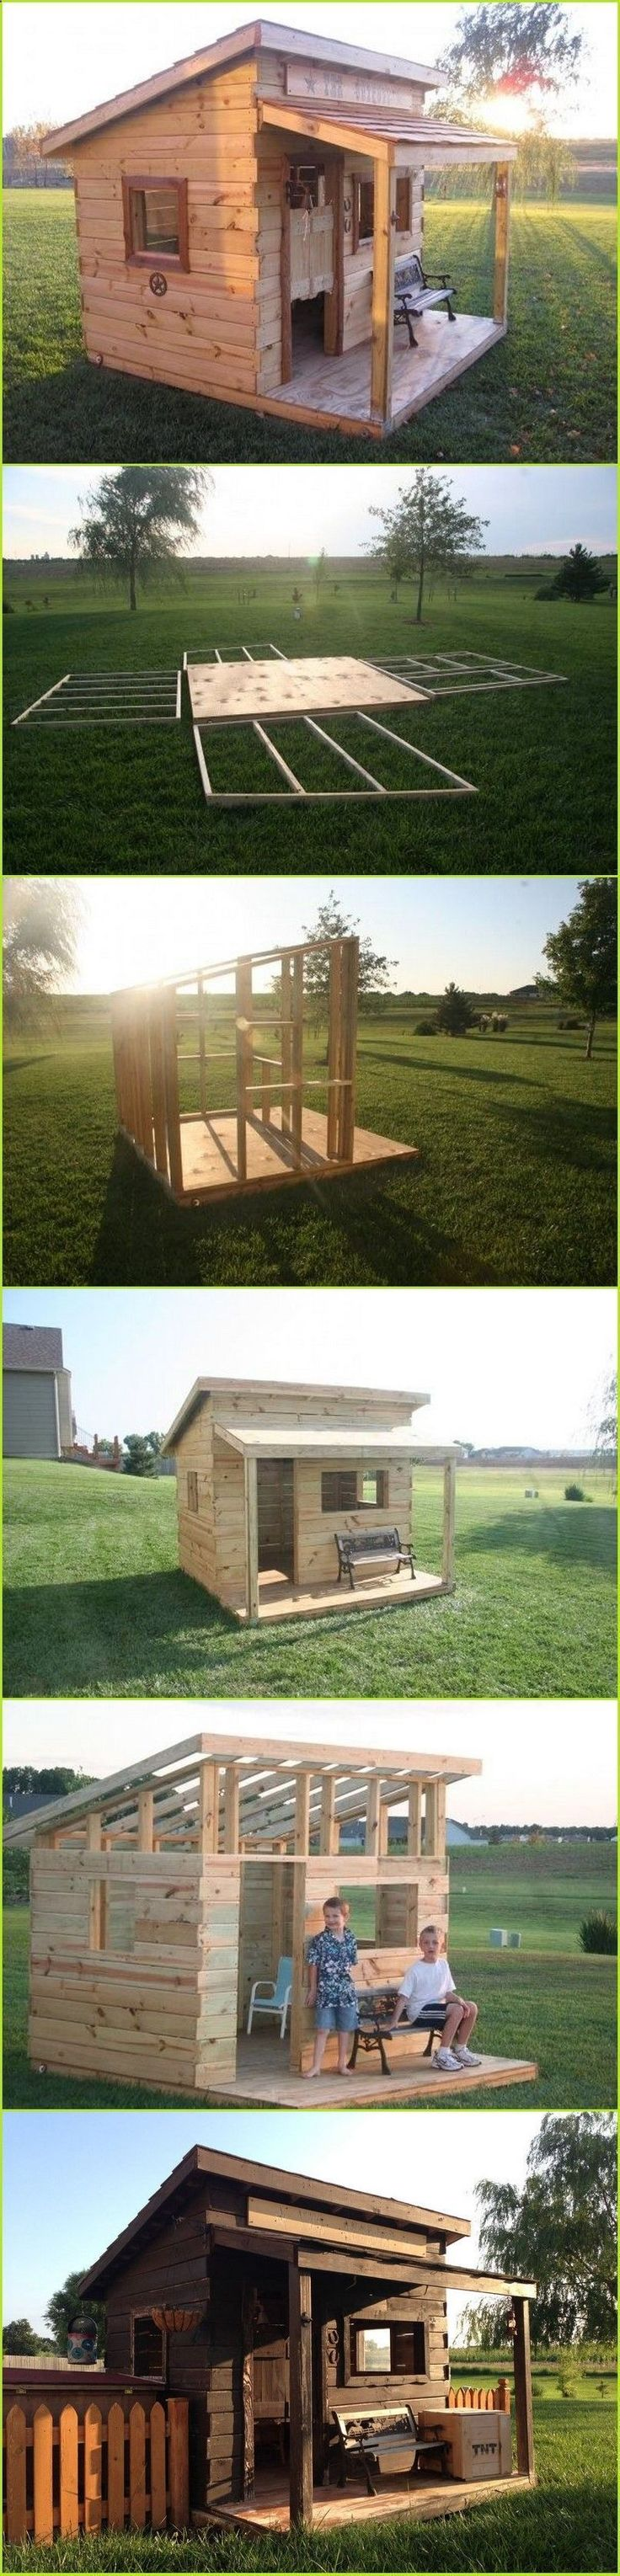 Shed Plans - DIY Kids Fort which could be readily altered to make a nice LARP or Ren Faire building. Now You Can Build ANY Shed In A Weekend Even If You've Zero Woodworking Experience! #playhousebuildingplans #buildplayhouses #buildachildrensplayhouse